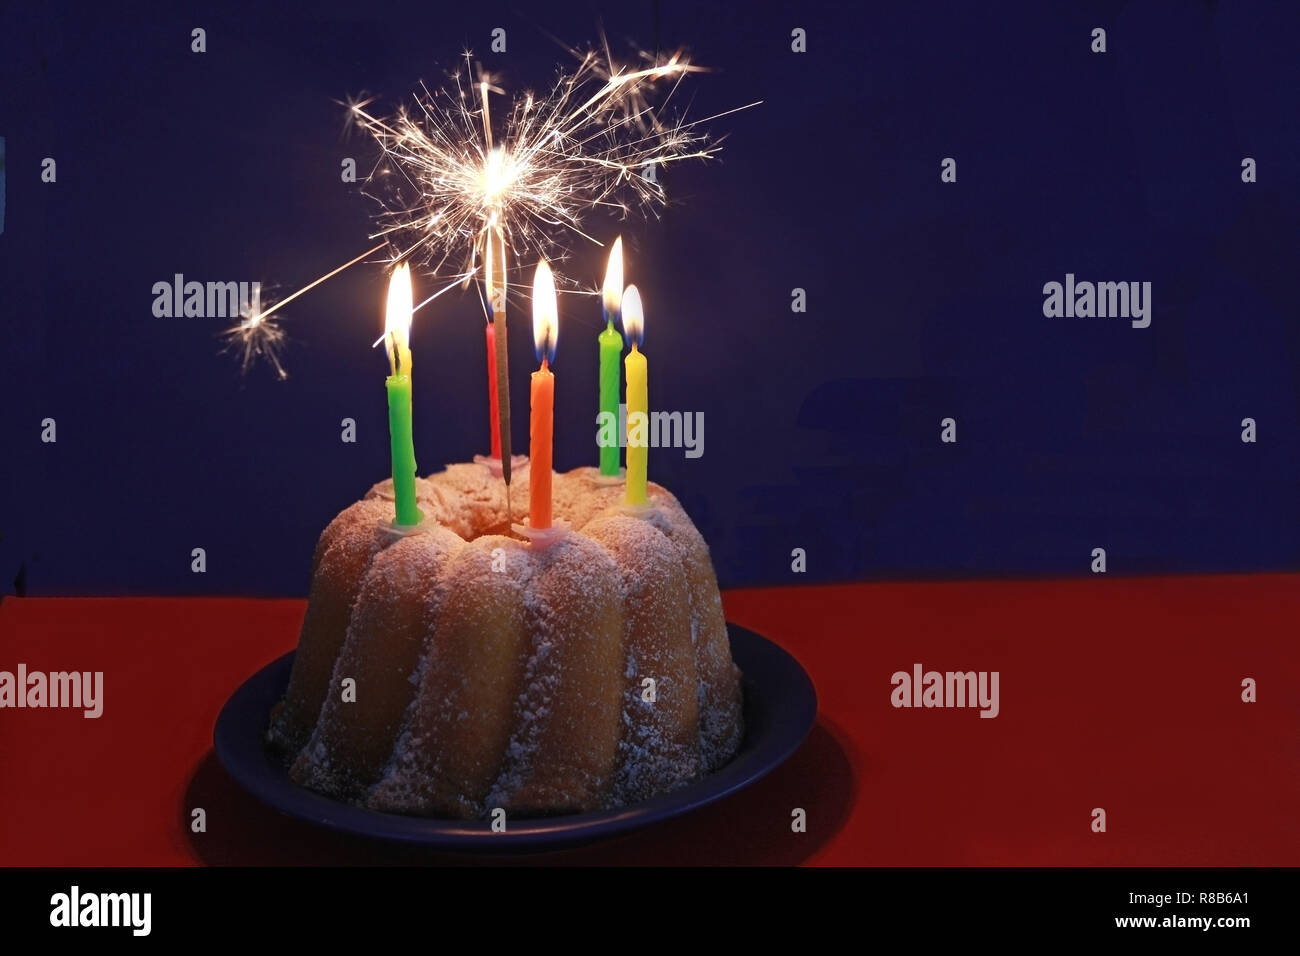 Birthday Cake For A Child With Burning Candles And Sparkler In Dark Room